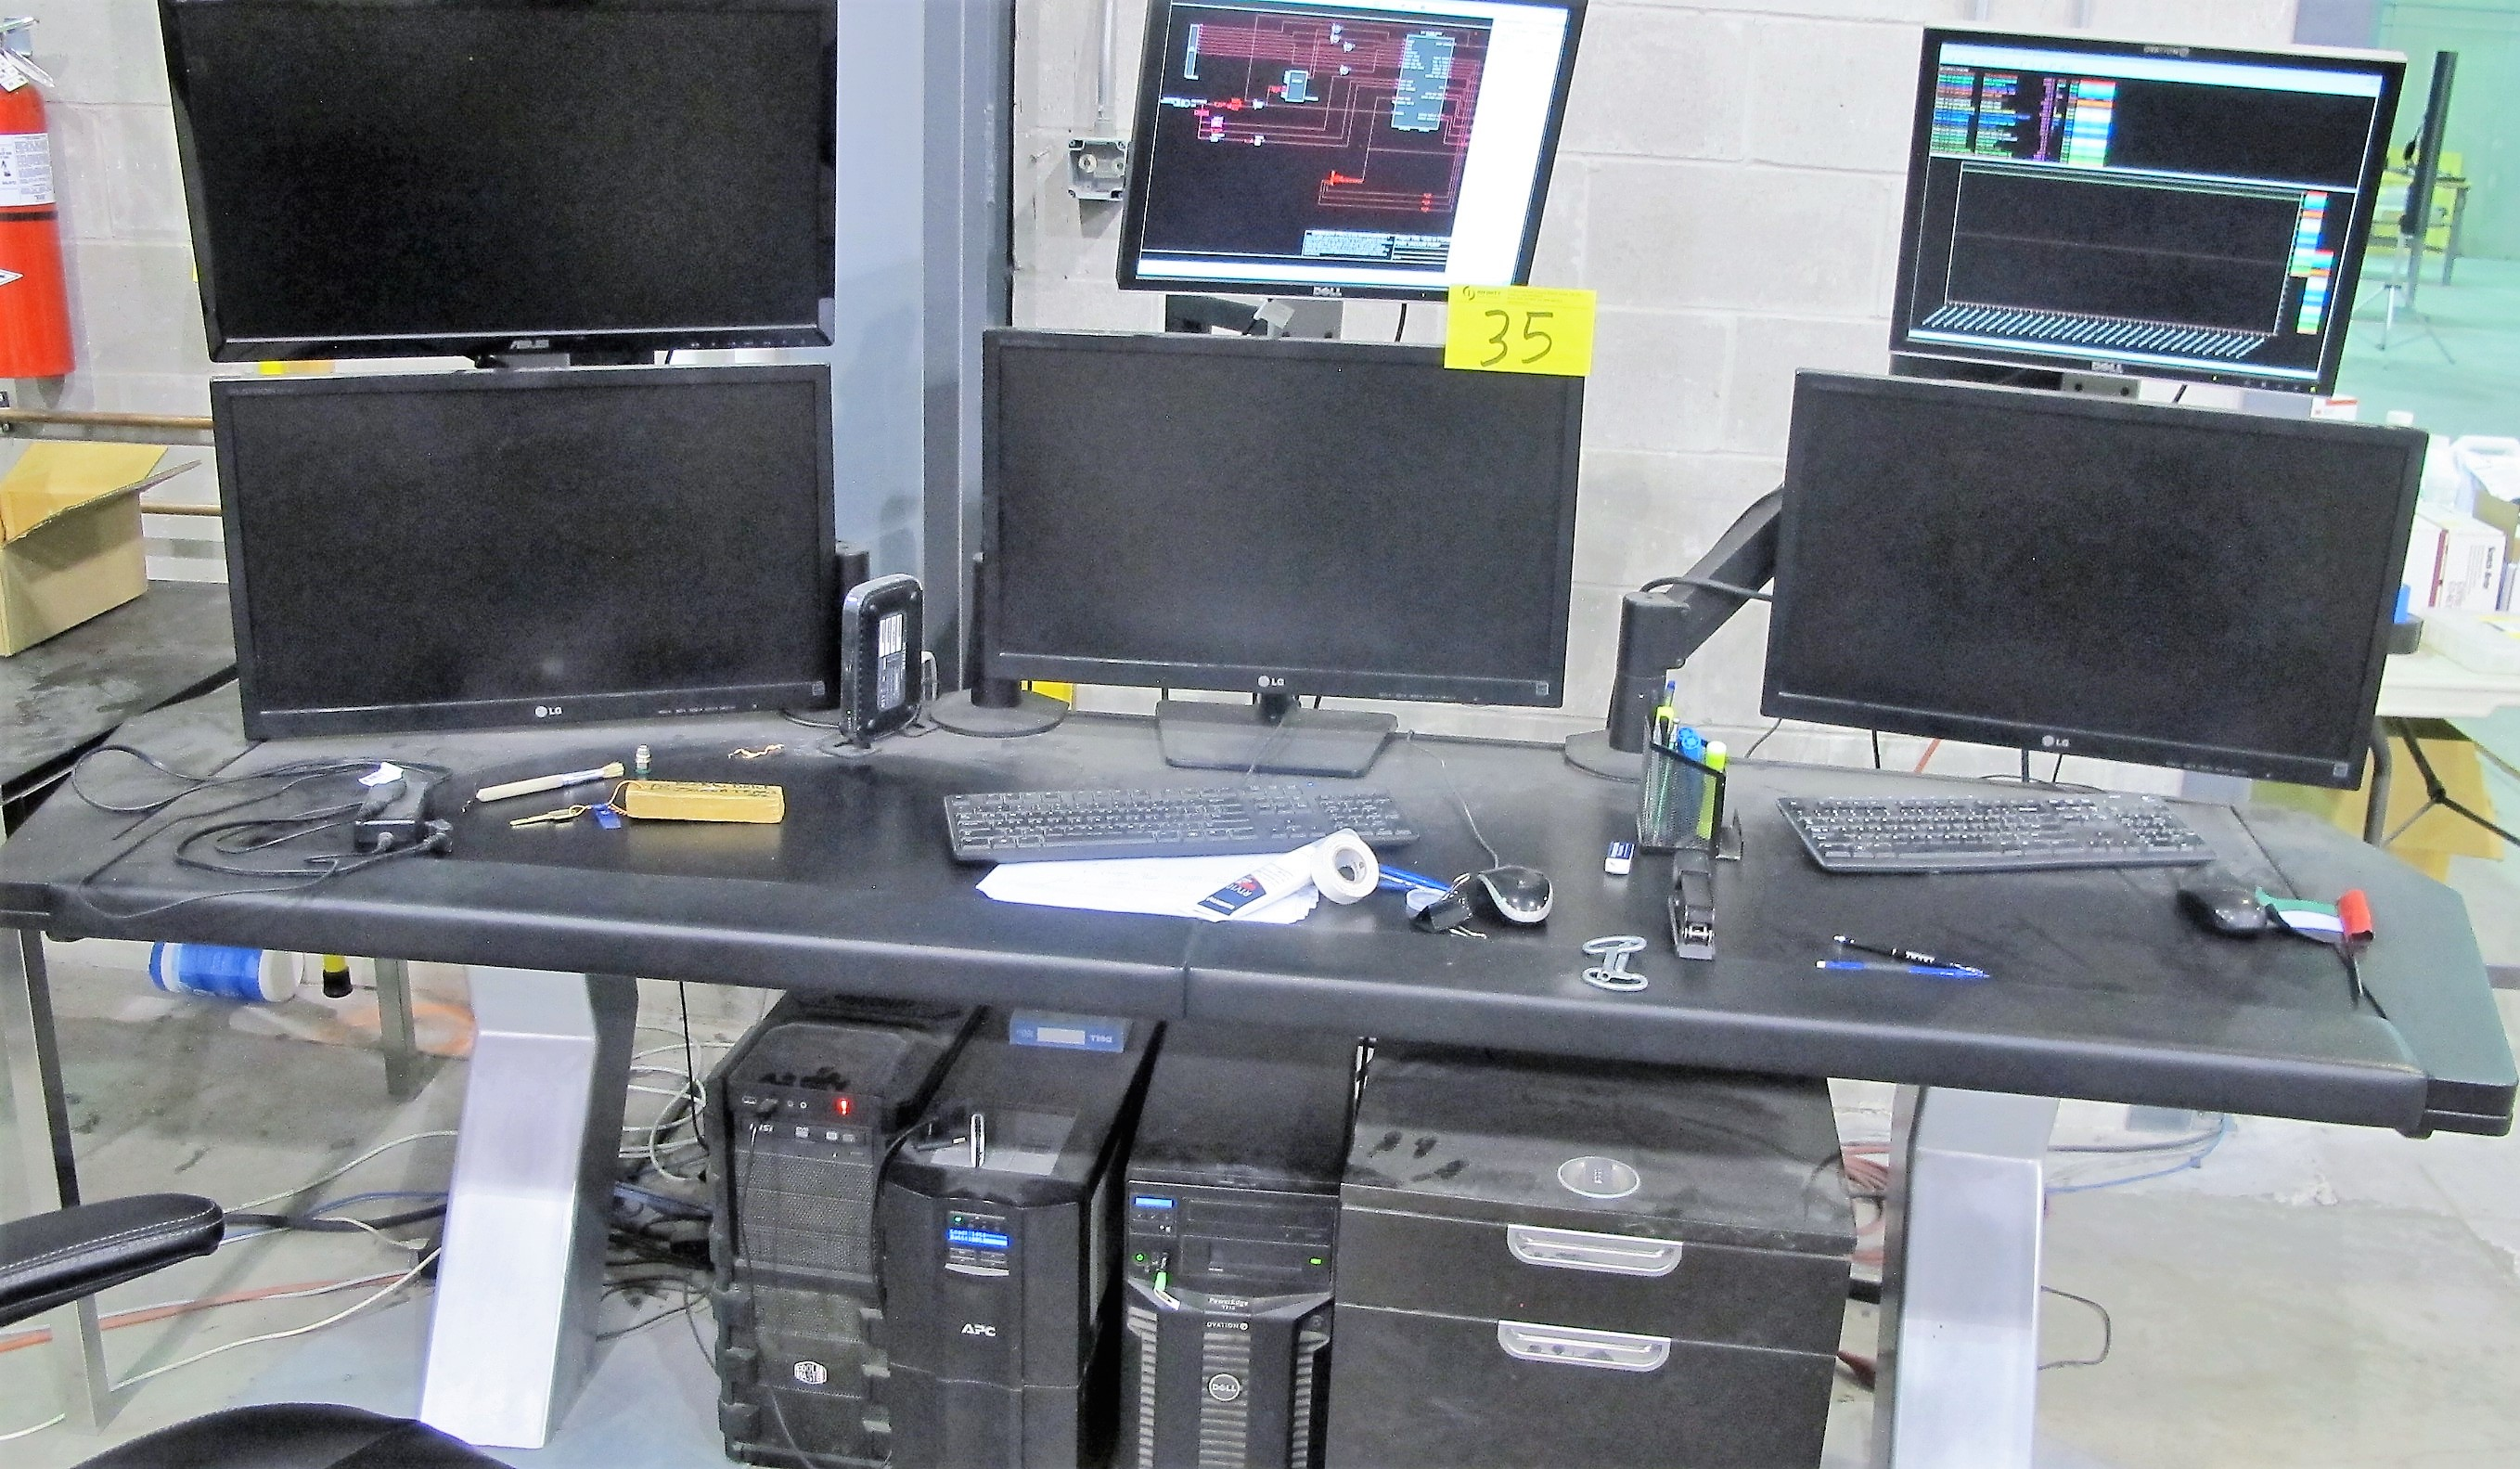 Lot 35 - DELL POWER EDGE T310/COOLMASTER/APC BACKUP COMPUTER CONTROL CENTER FOR ELECTRICAL TEST VAULTS (INCL.